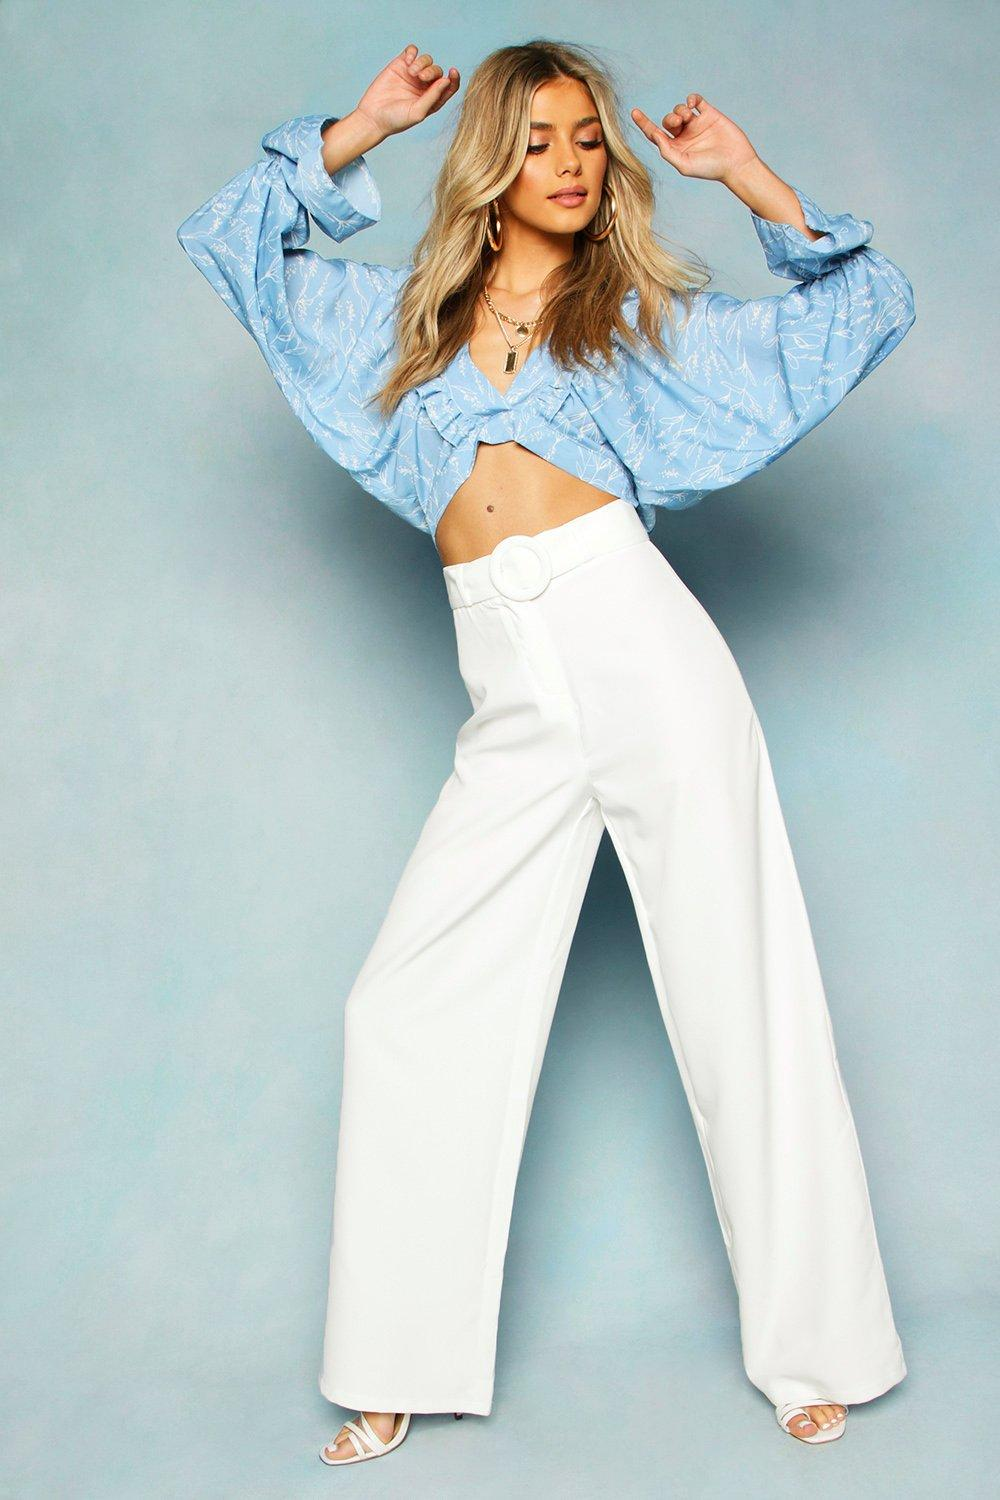 Vintage High Waisted Trousers, Sailor Pants, Jeans Womens Wide Leg Belted High Waist Pants - white - 10 $29.00 AT vintagedancer.com